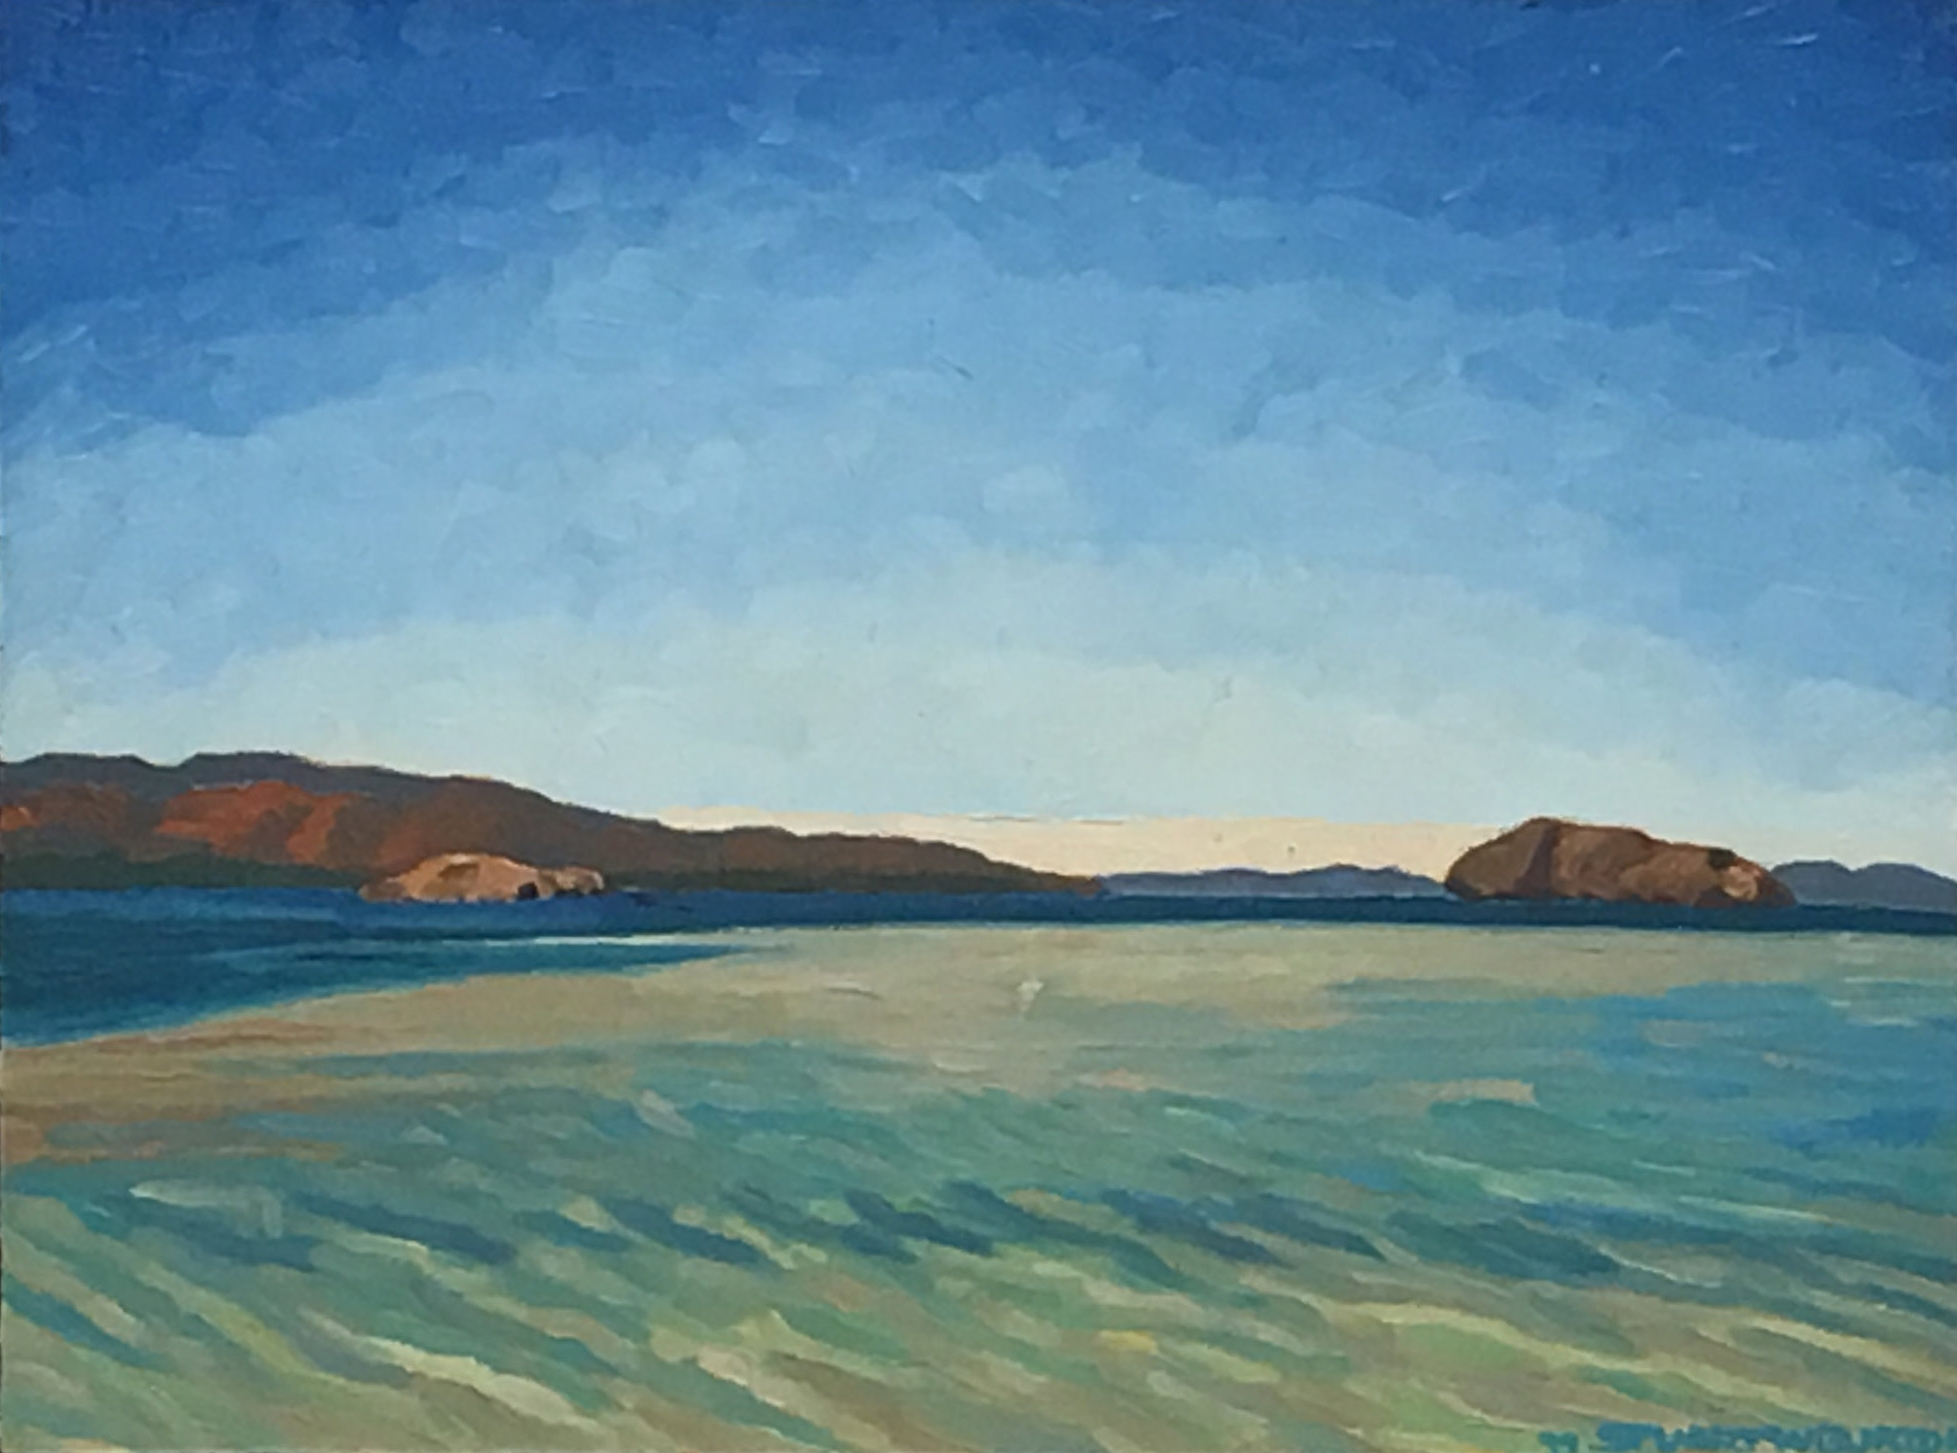 Island, Bay of Conception    12x16     Oil on Panel      1999